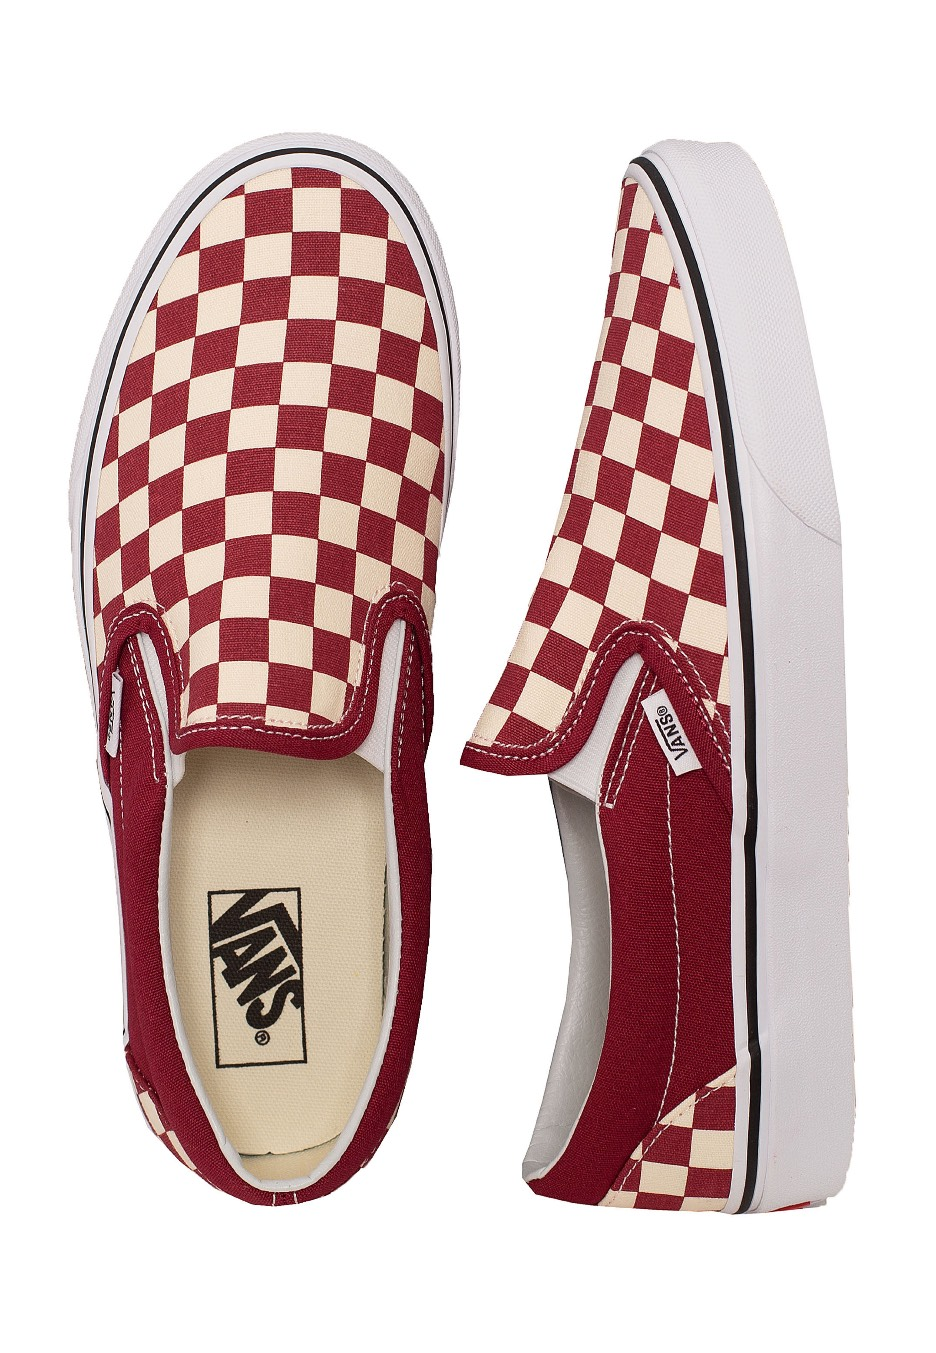 Vans Classic Slip On Checkerboard Rumba RedWhite Skor